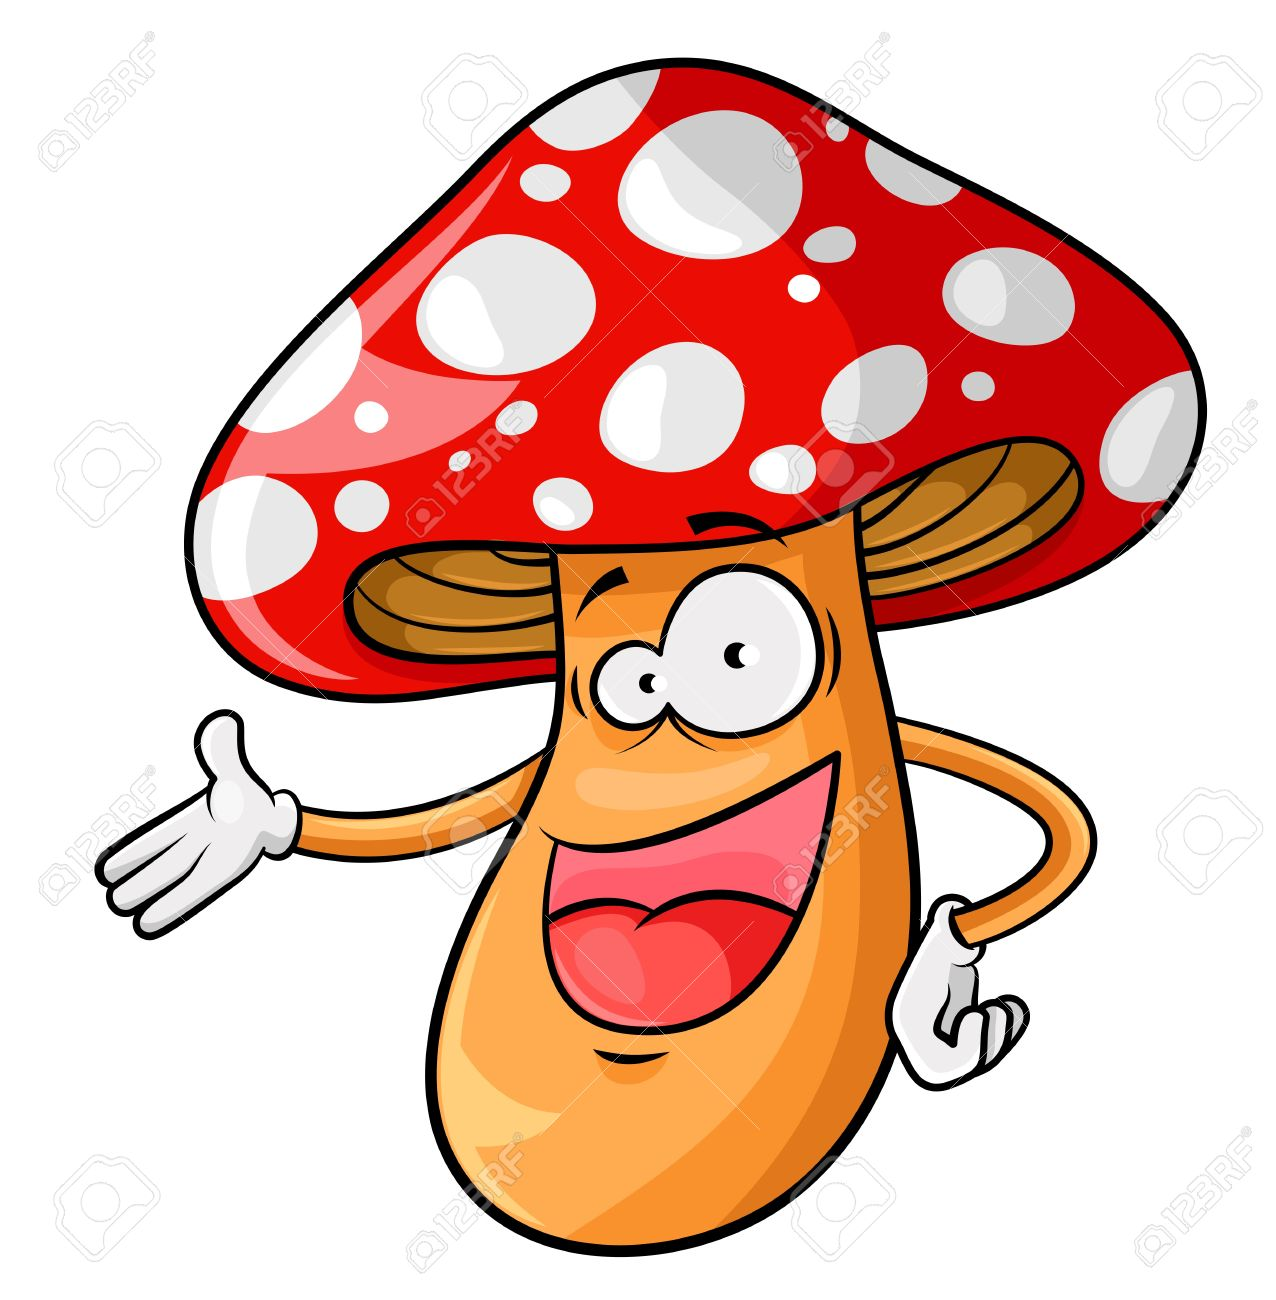 Happy Cartoon Mushroom Isolated On White Royalty Free Cliparts